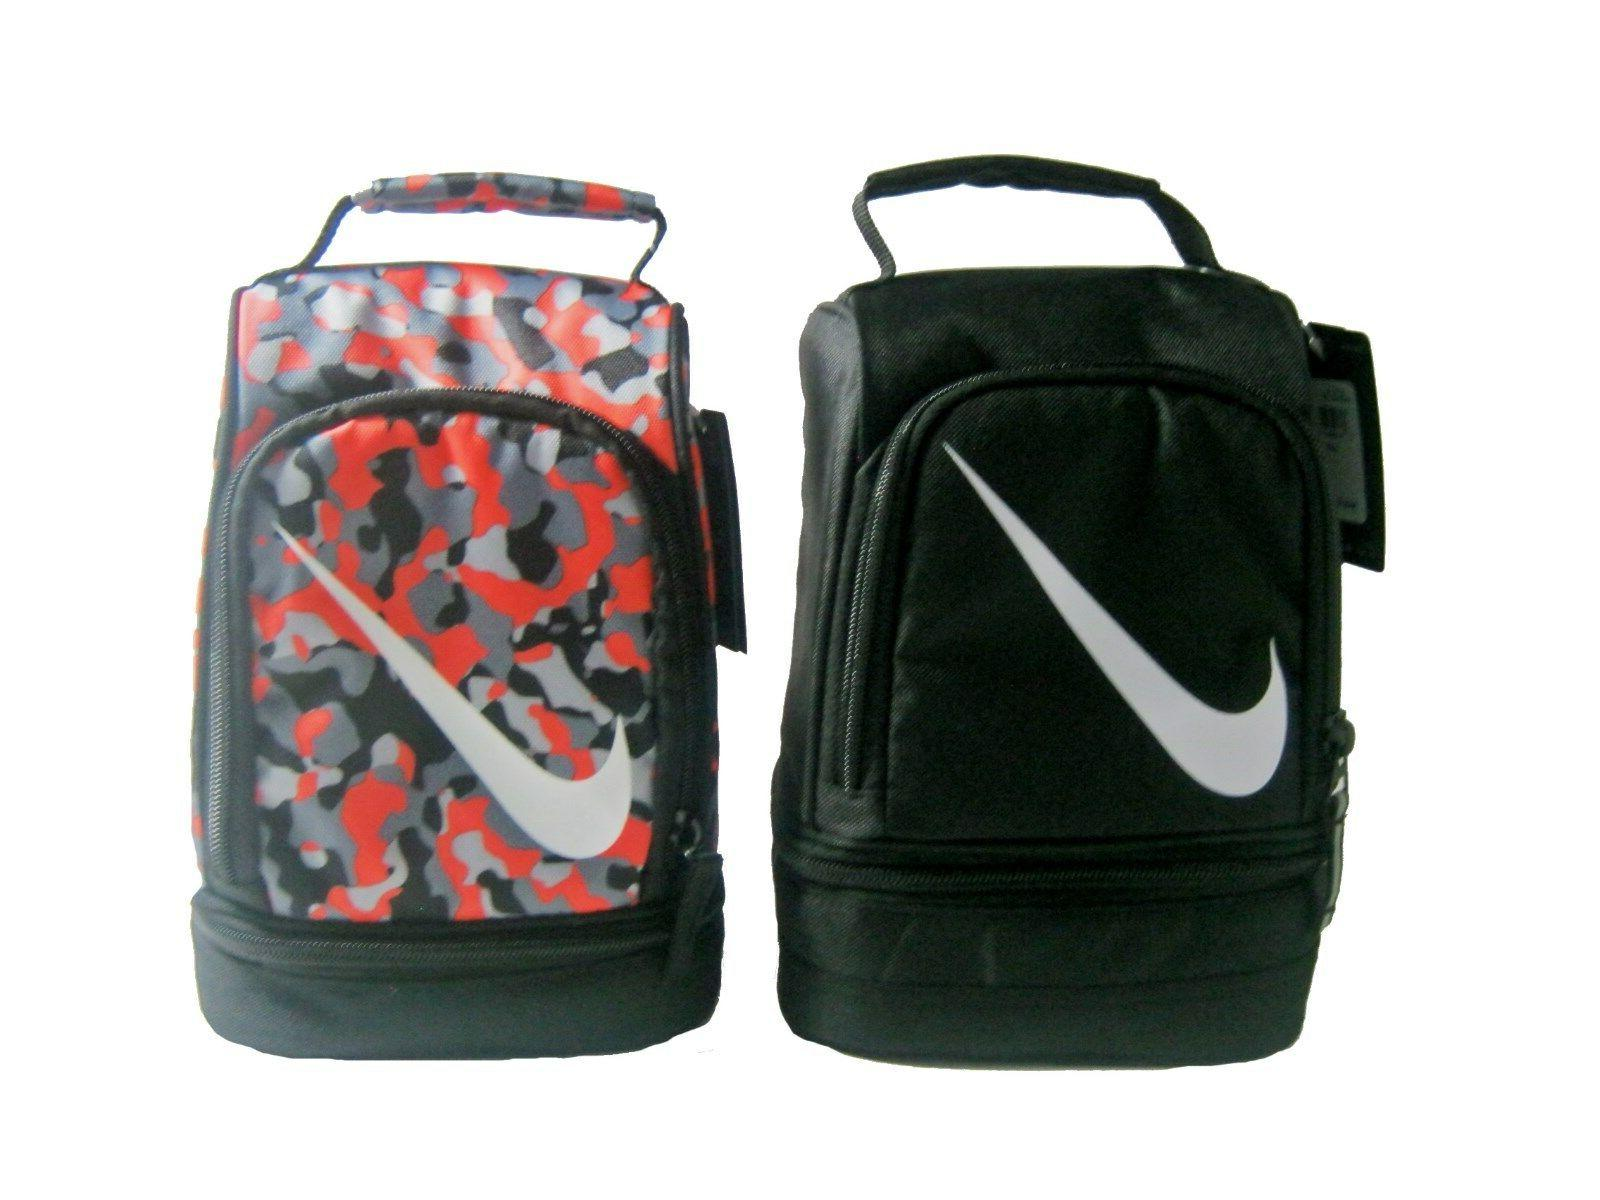 insulated dome lunch box tote school bag